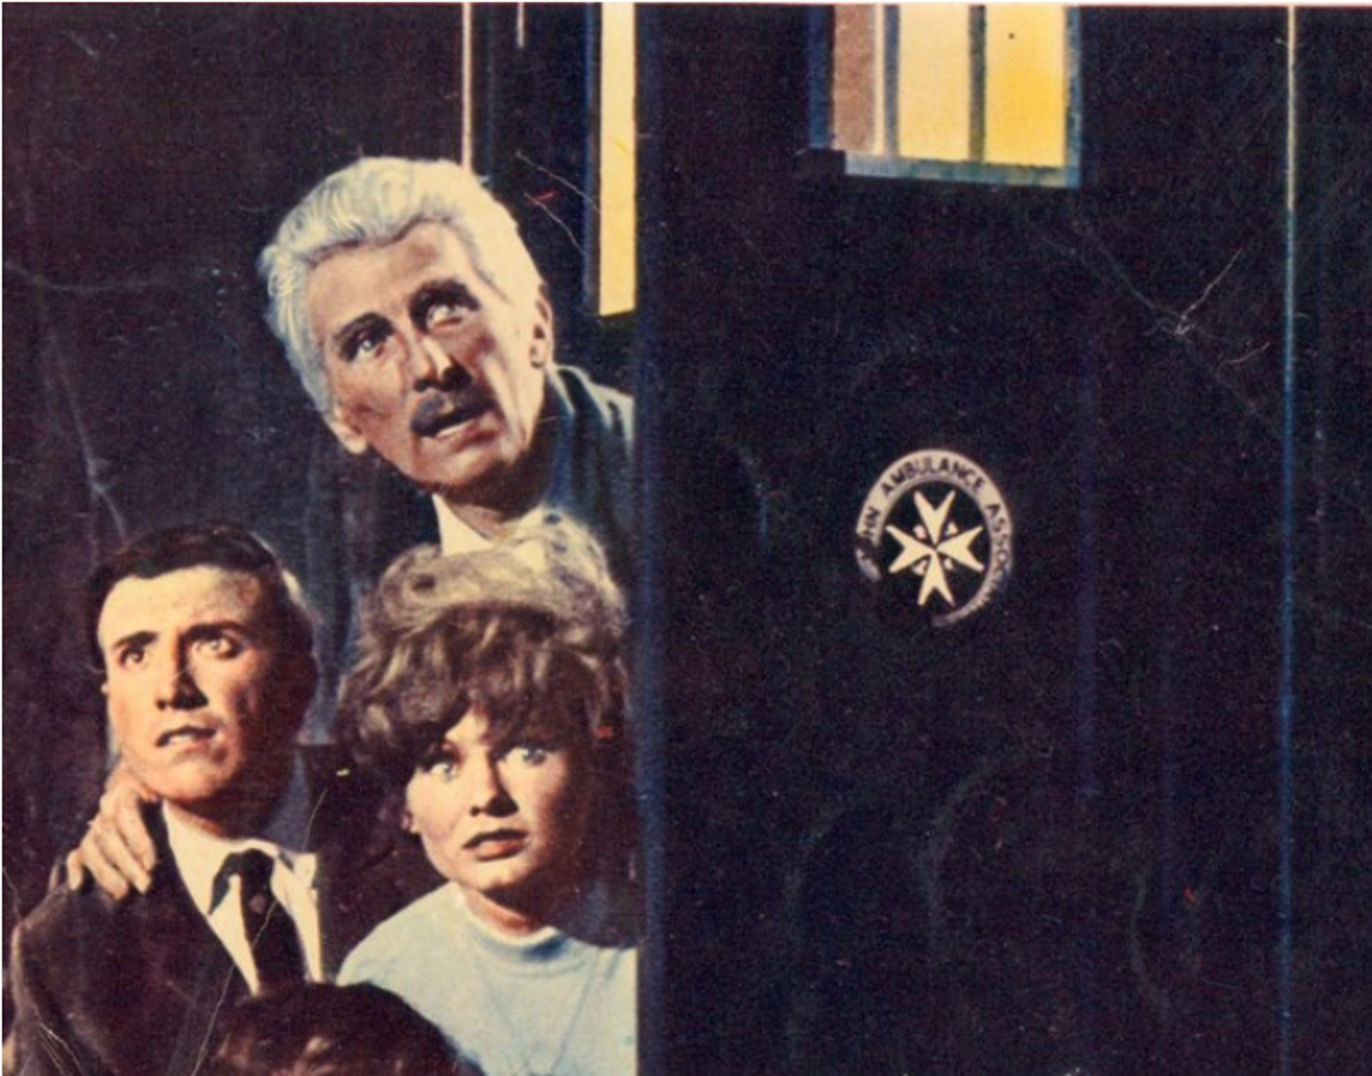 St John Ambulance Plaque from Dr Who and the Daleks Lobby Card.jpg